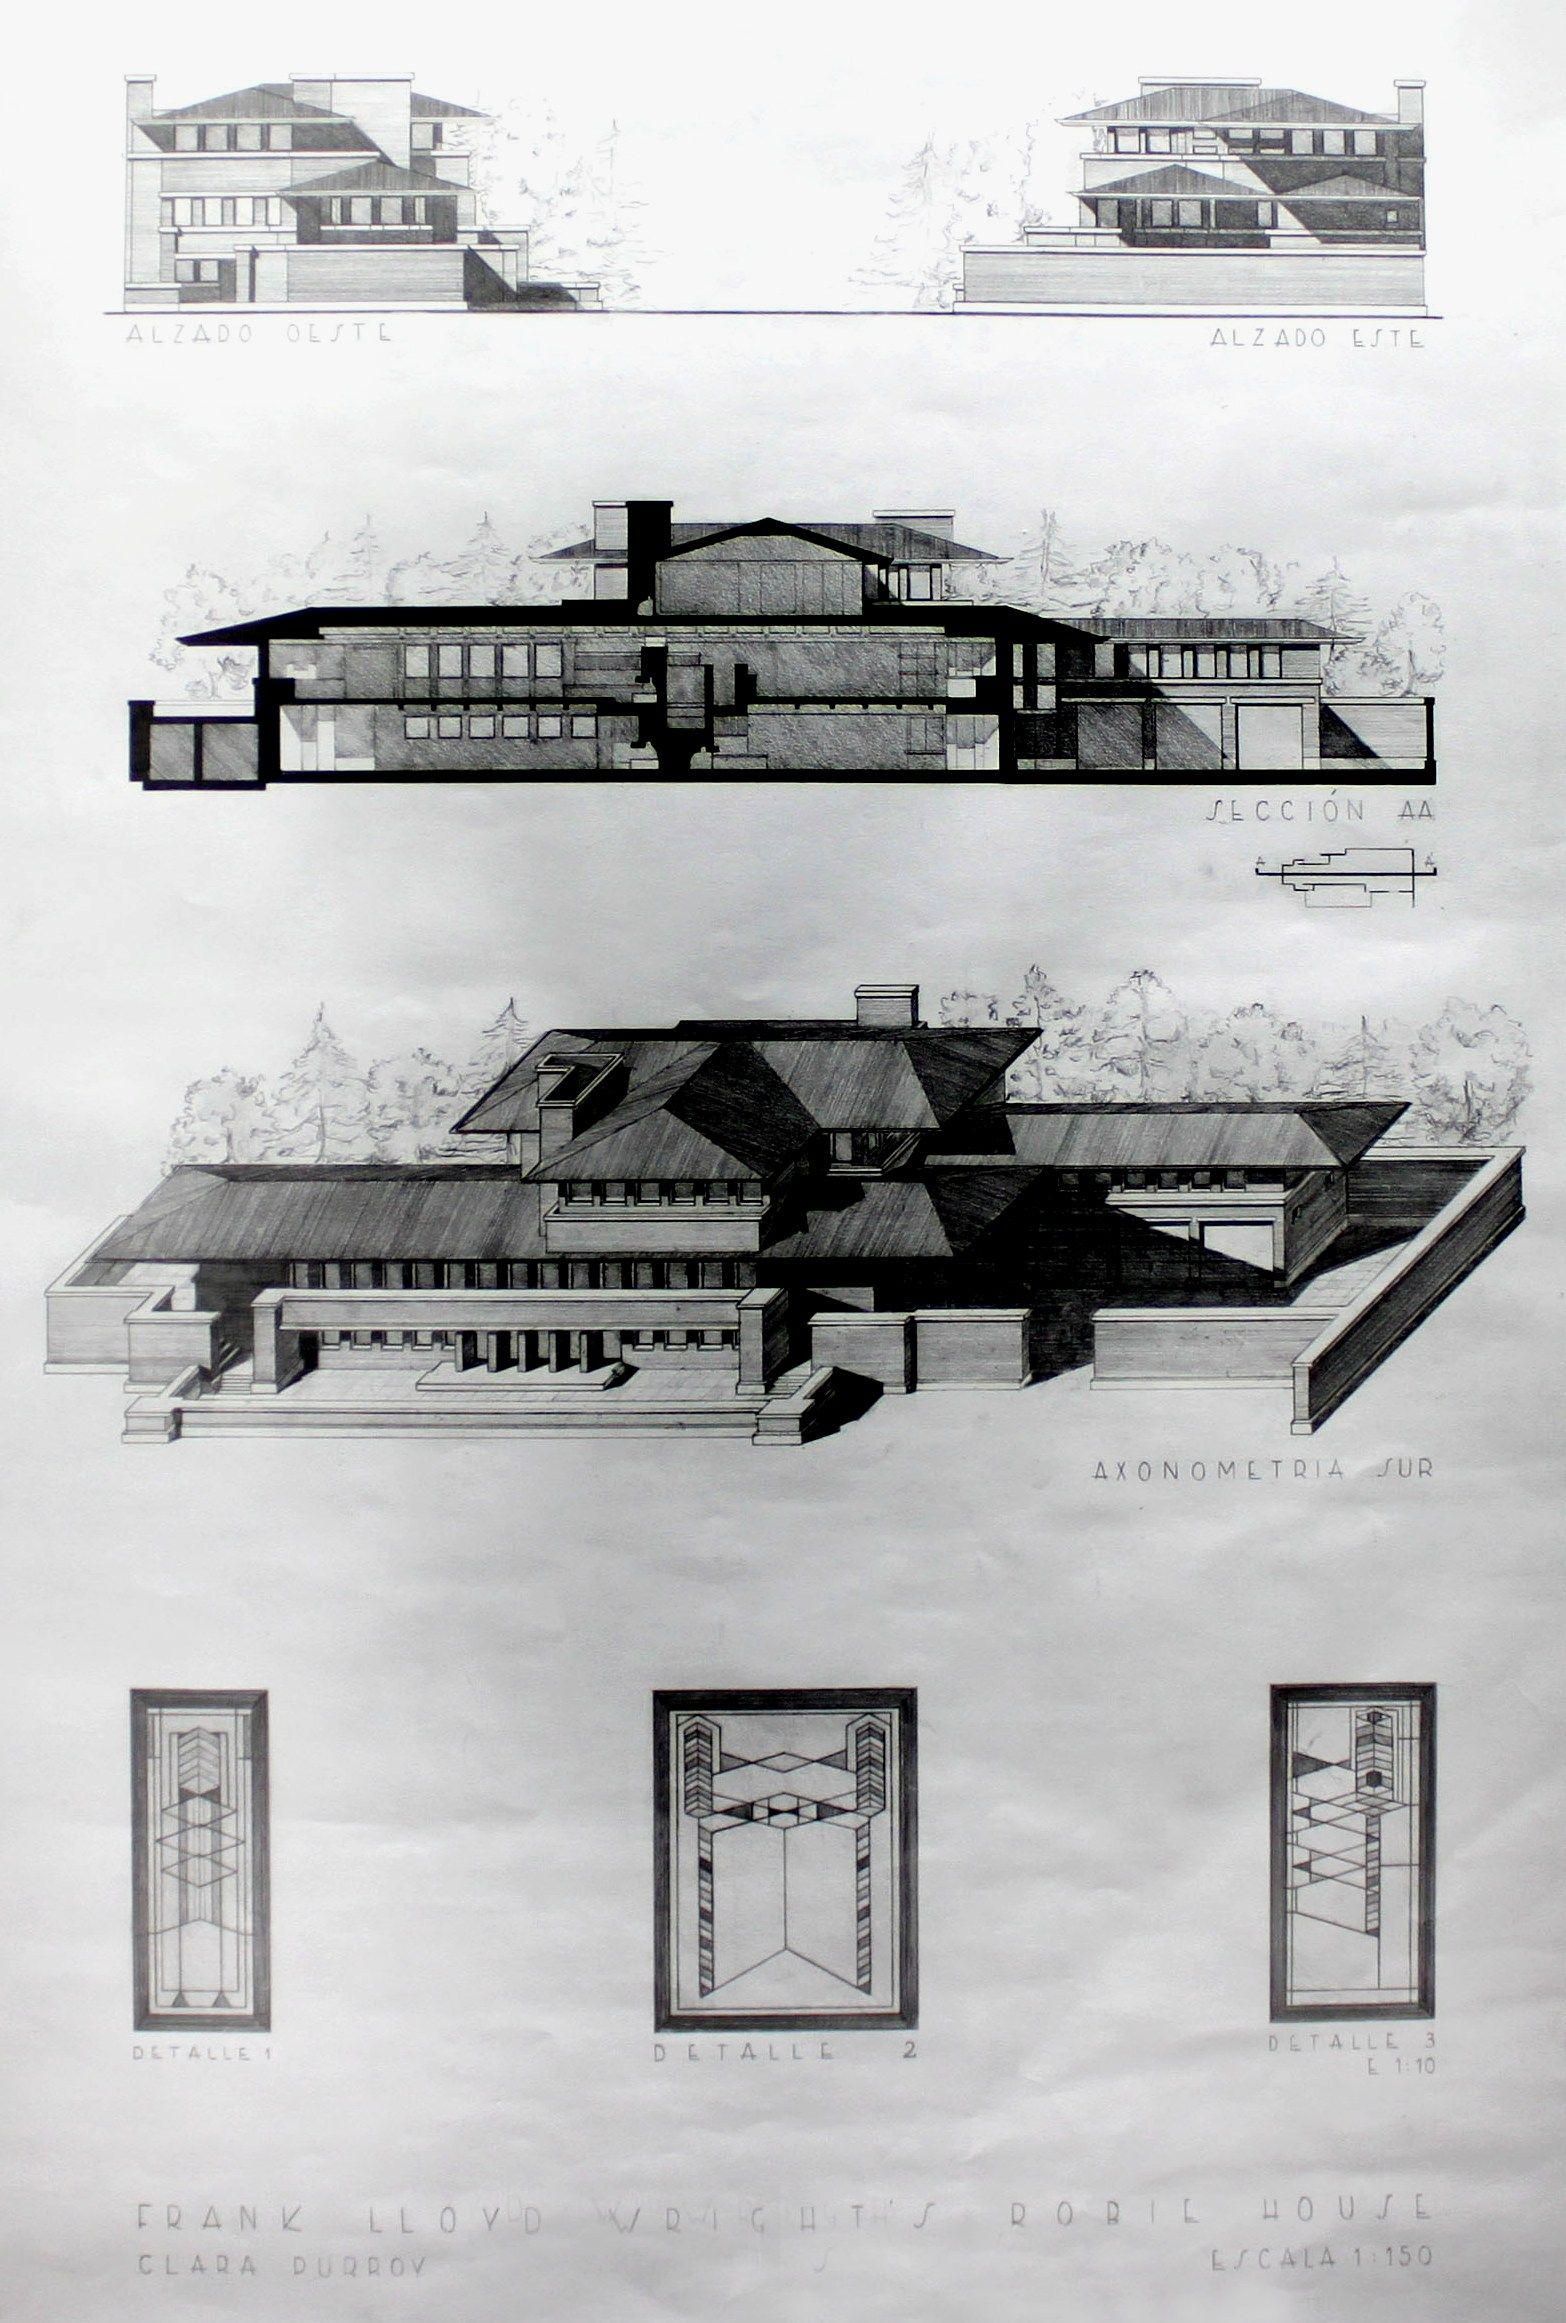 Axonometric sections view drawing robbie house frank lloyd wright 2011 by